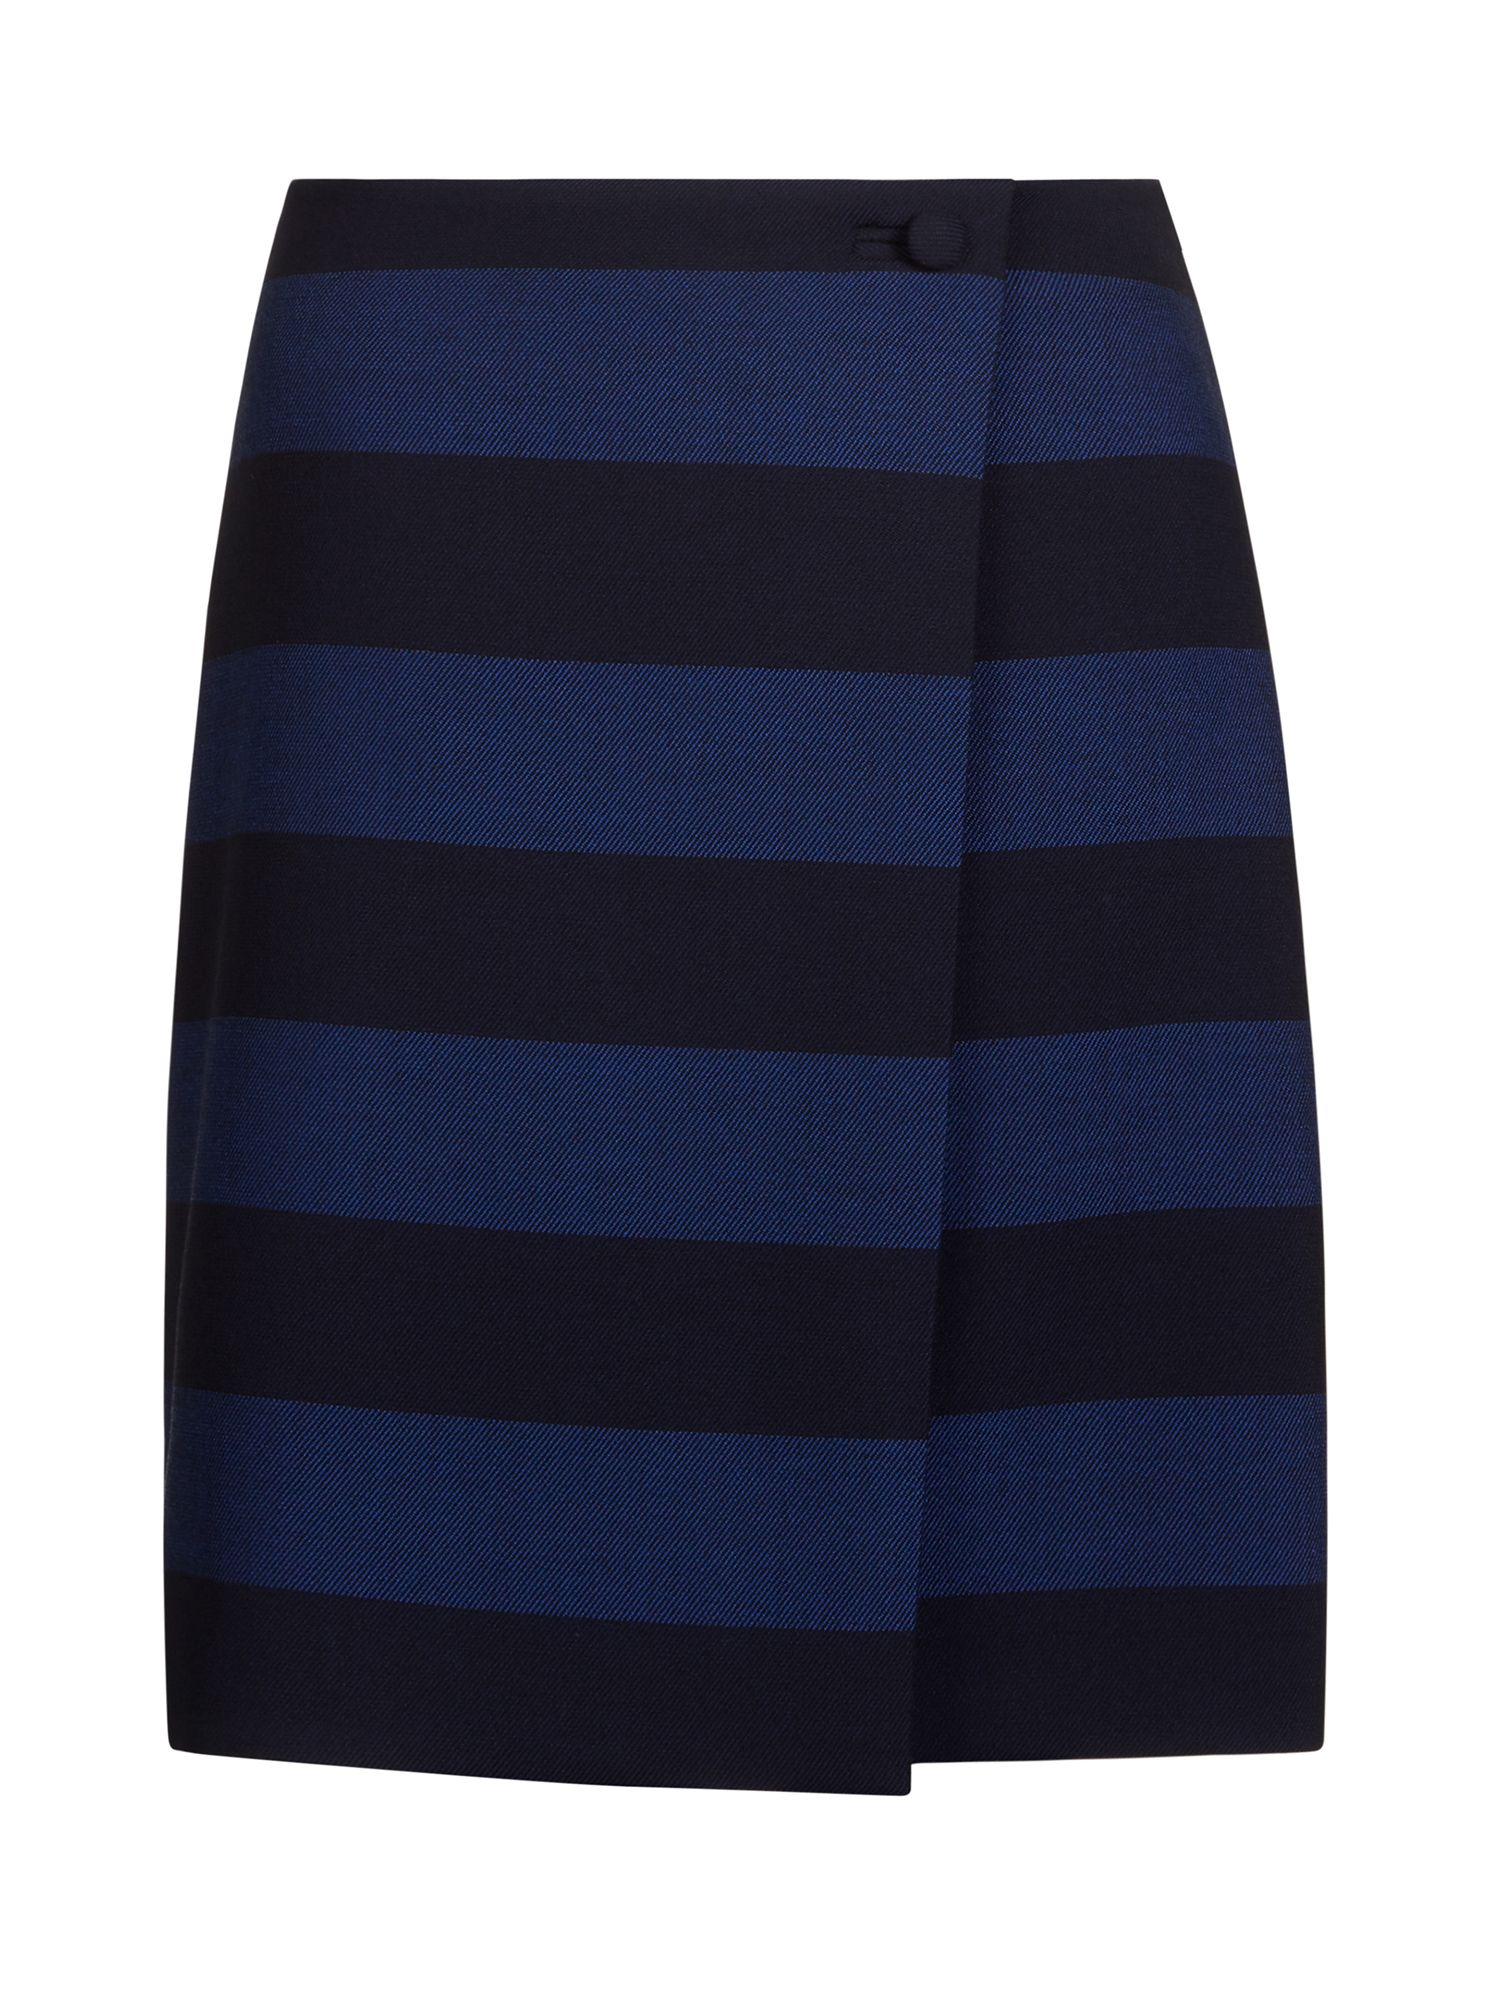 Hobbs Gracie Skirt, Blue